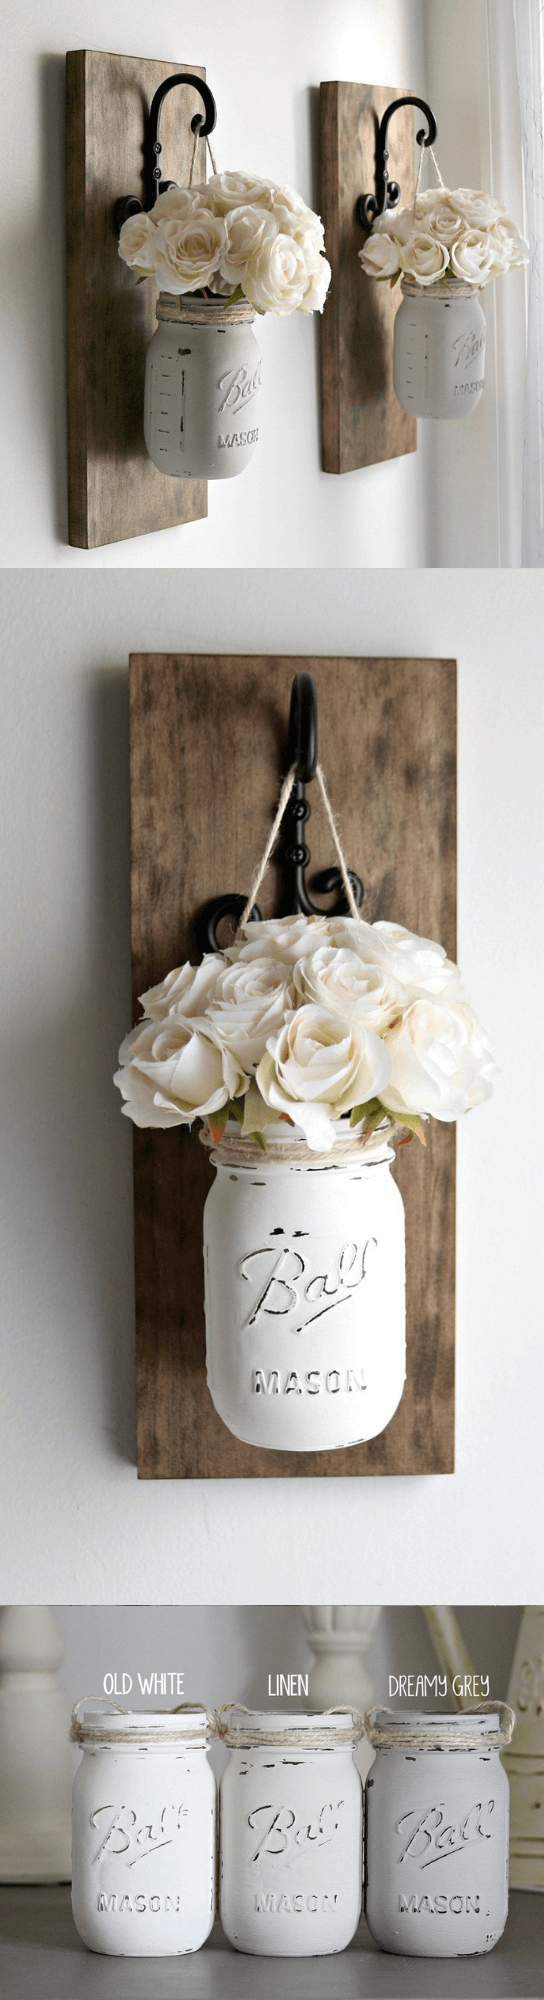 Hanging Painted Mason Jar Wall Sconces